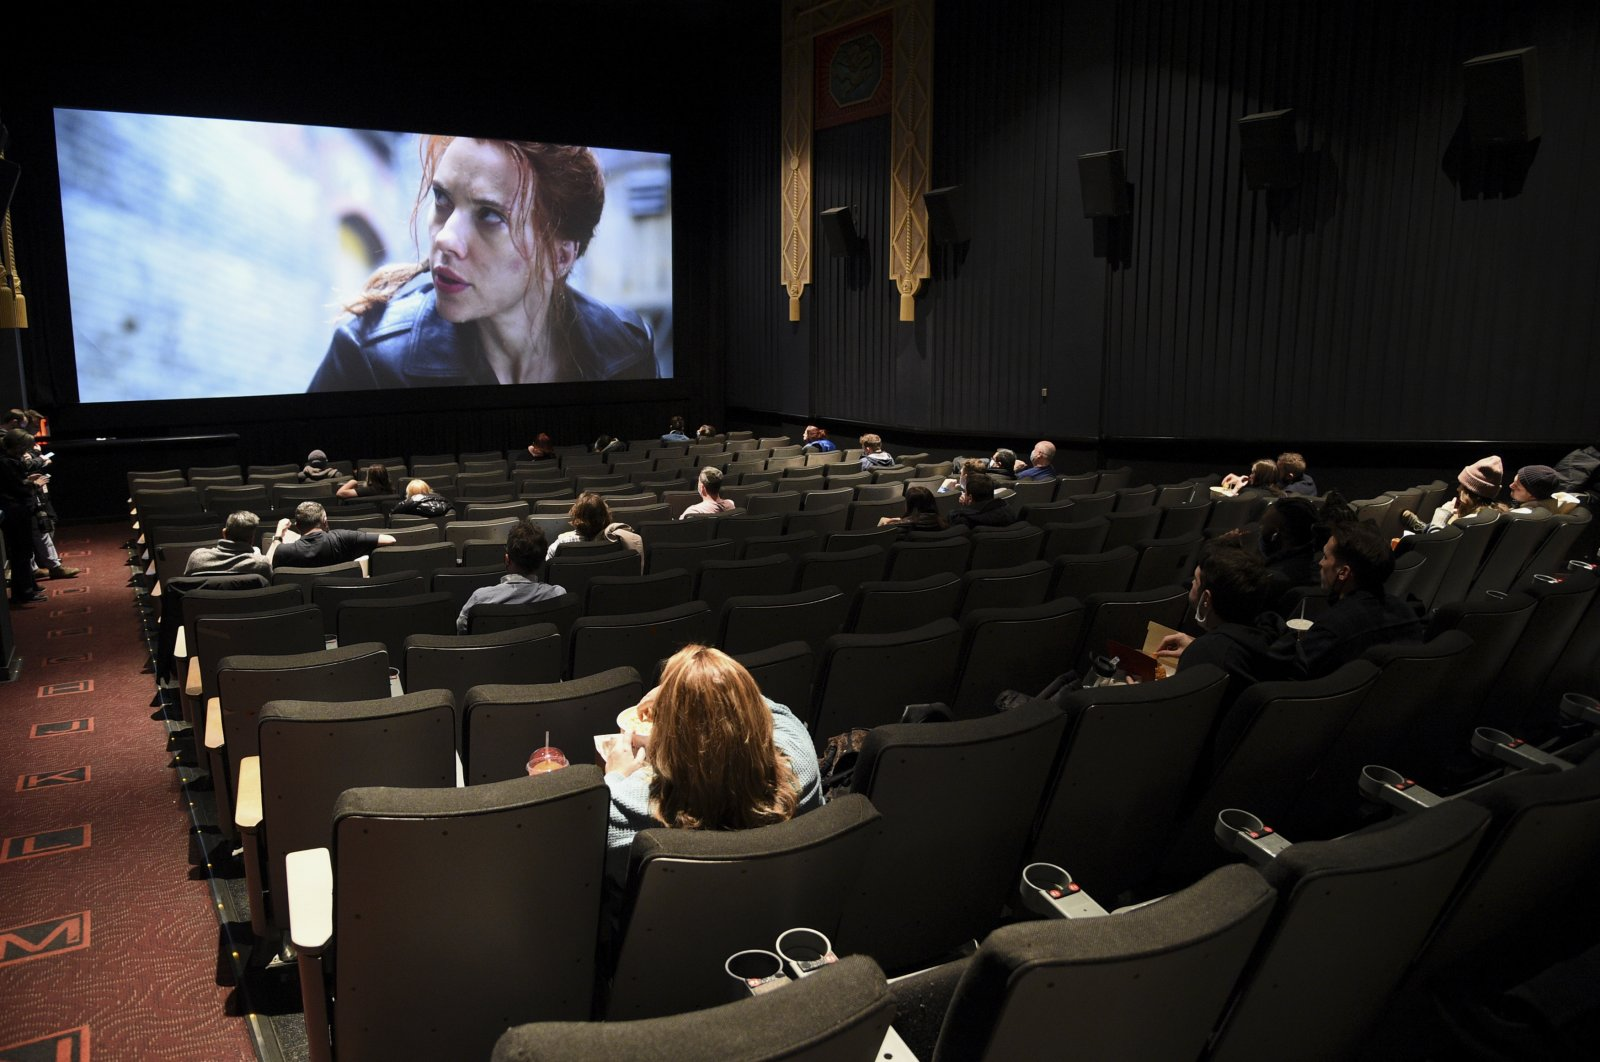 Moviegoers sit in a socially distant seating arrangement at the AMC Lincoln Square 13 theater on the first day of reopened theaters in New York City, New York, U.S., March 5, 2021. (Photo by Evan Agostini/Invision/AP, File)